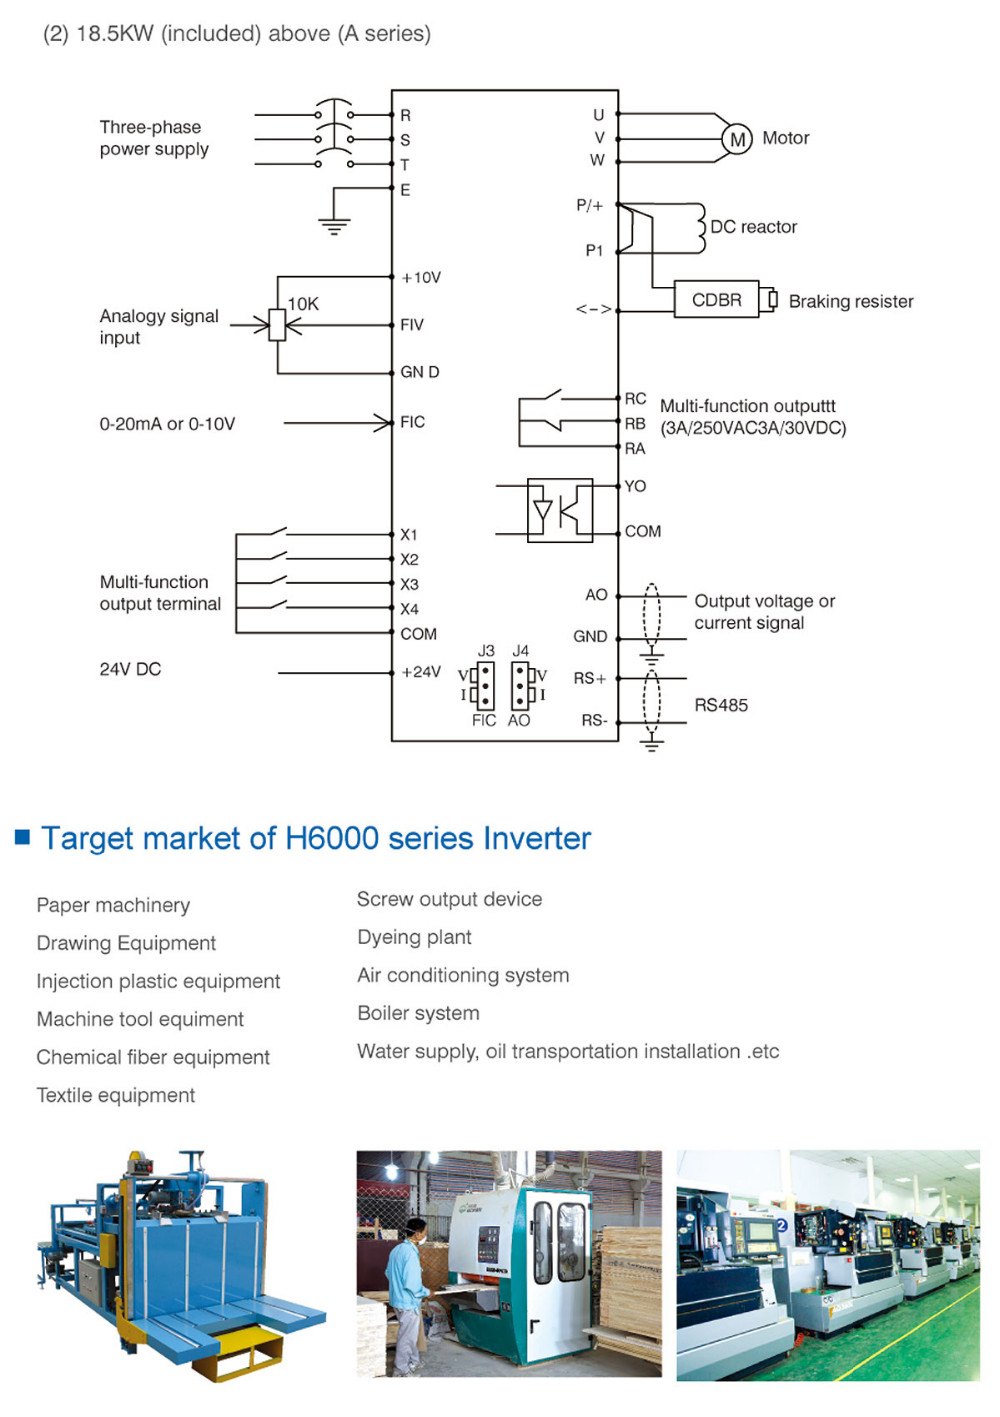 Variable Frequency Drive Vfd 3phase 220v 230v 240v 32a 75kw 10hp Ac 3 Phase Motor Wiring Diagram Vacon Delta